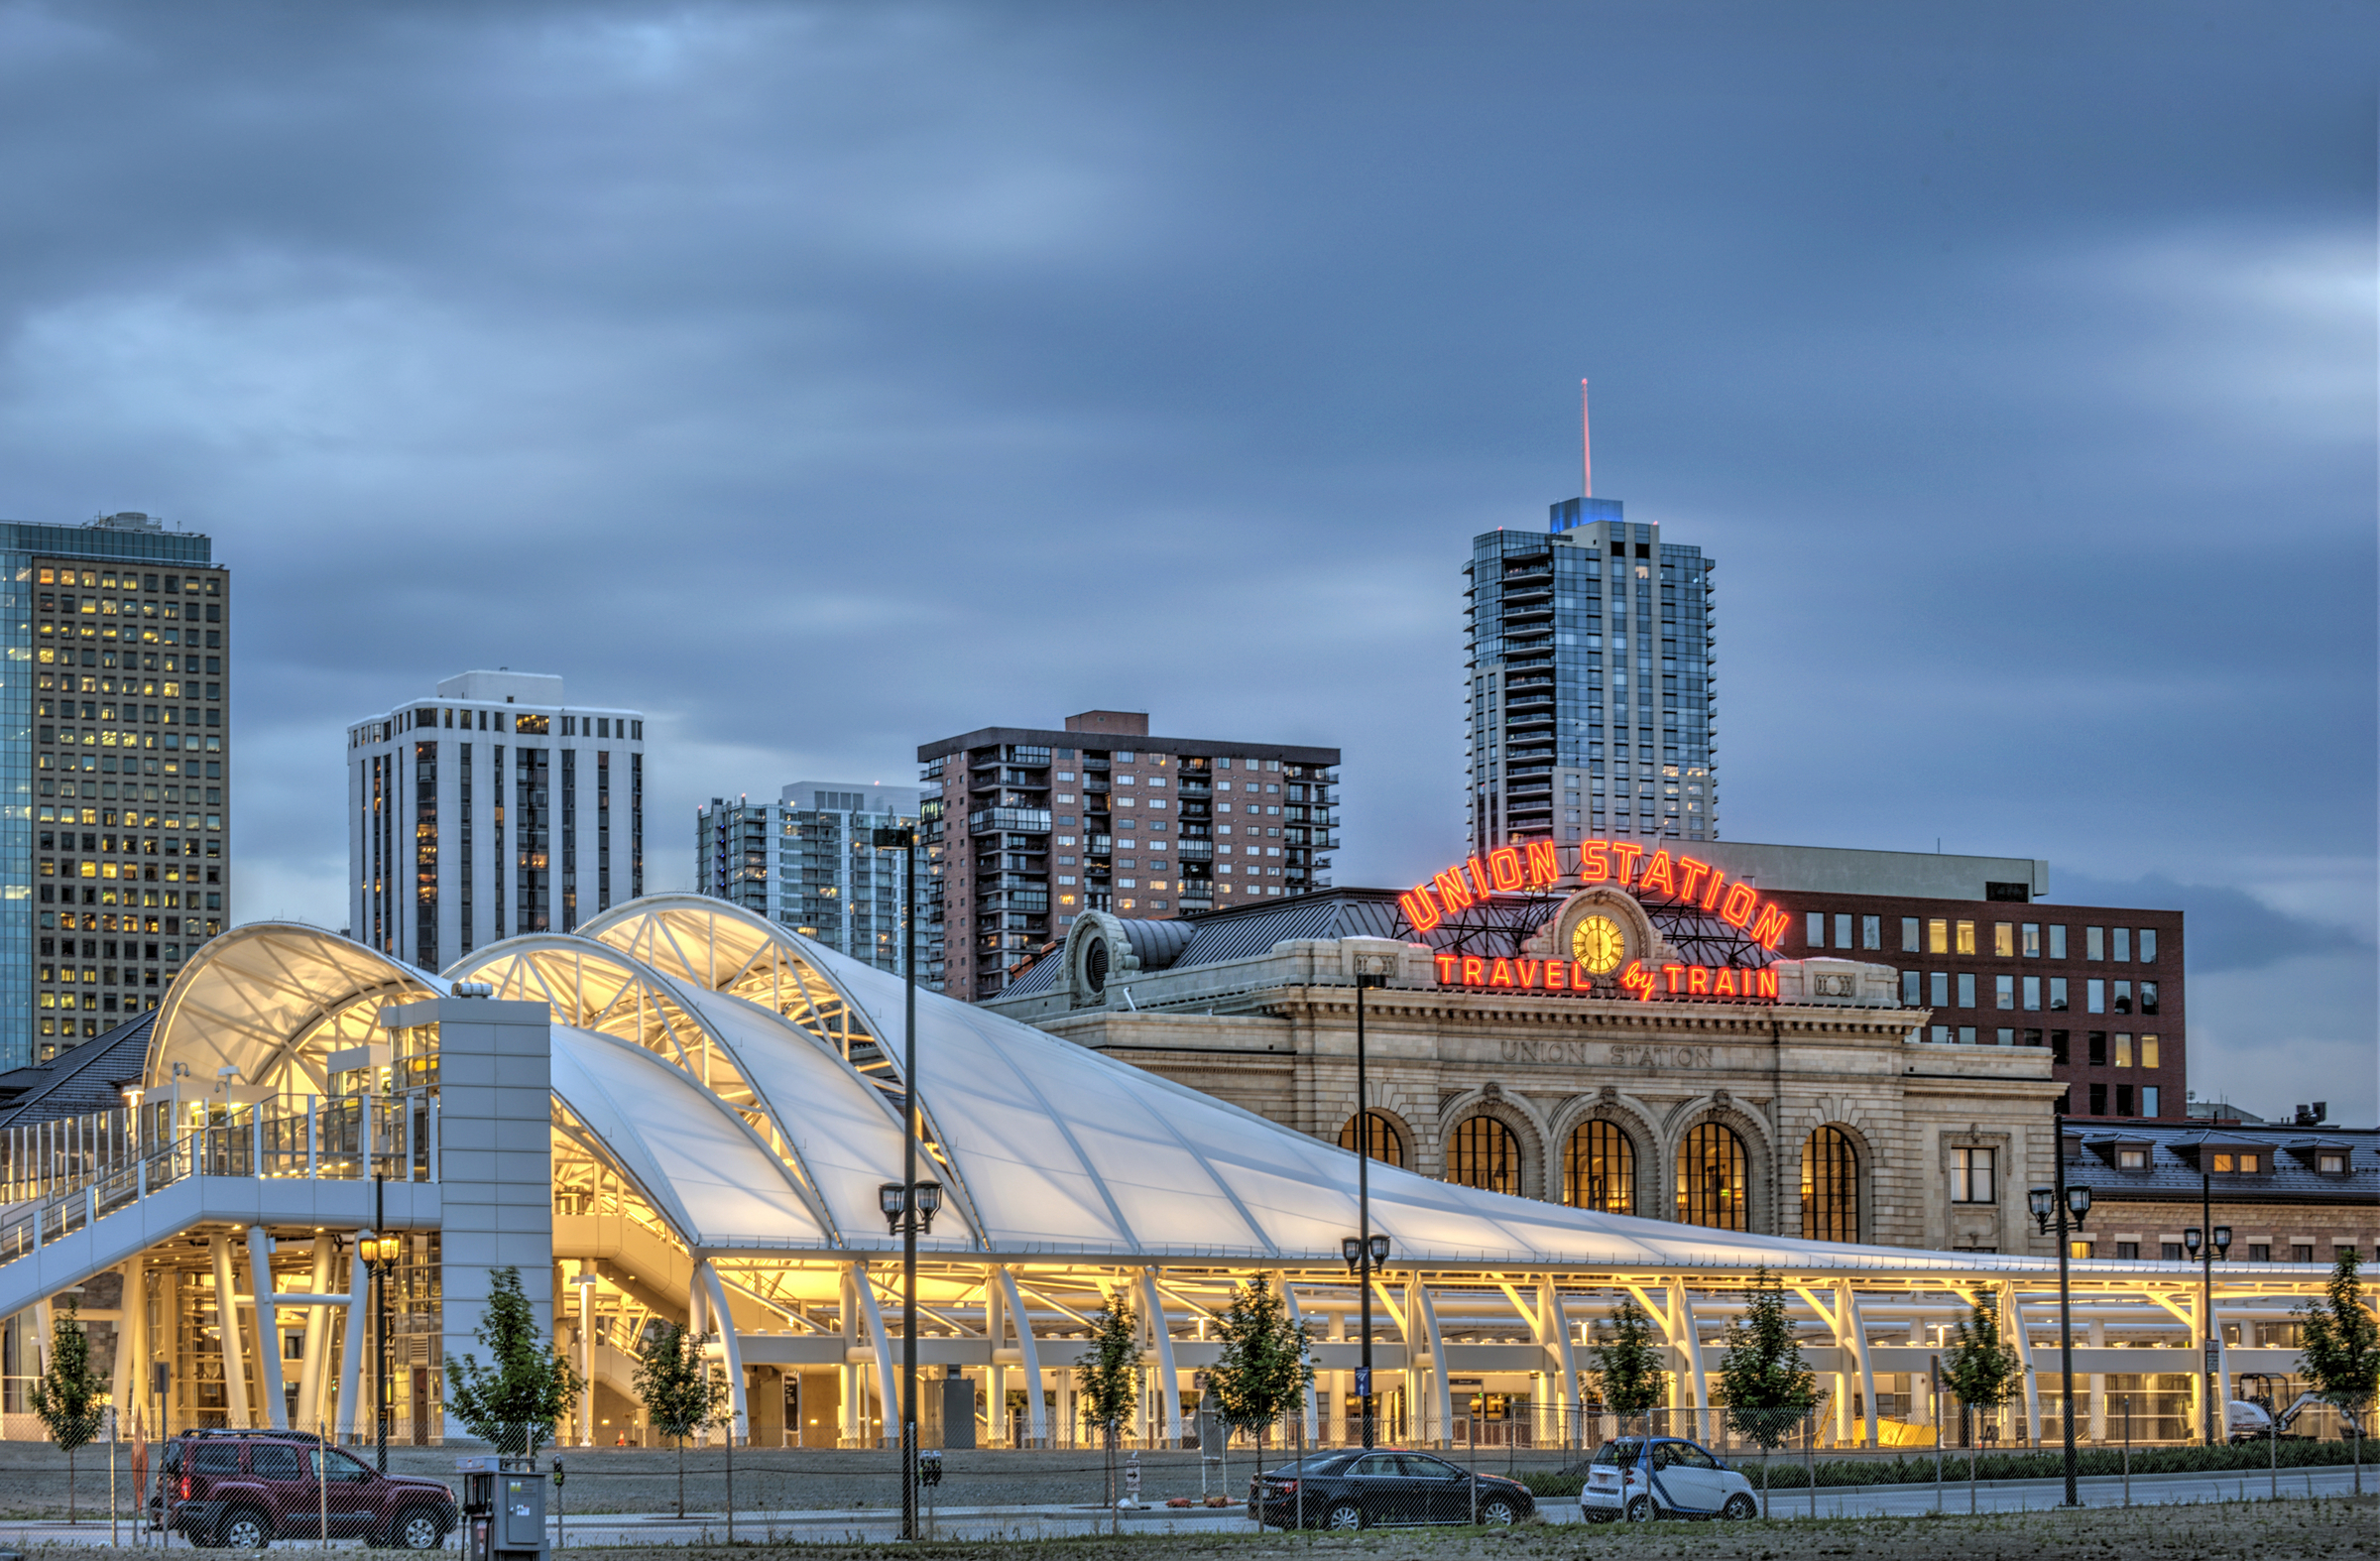 Denver Union Station Urban Beekeeping additionally A More Detailed Look At Union Stations Future 5844615 besides Denver Area Farmers Markets Whats Season 35868 furthermore Denver Union Station Ready For Its Close Up likewise Beauty Essex. on denver union station restaurants